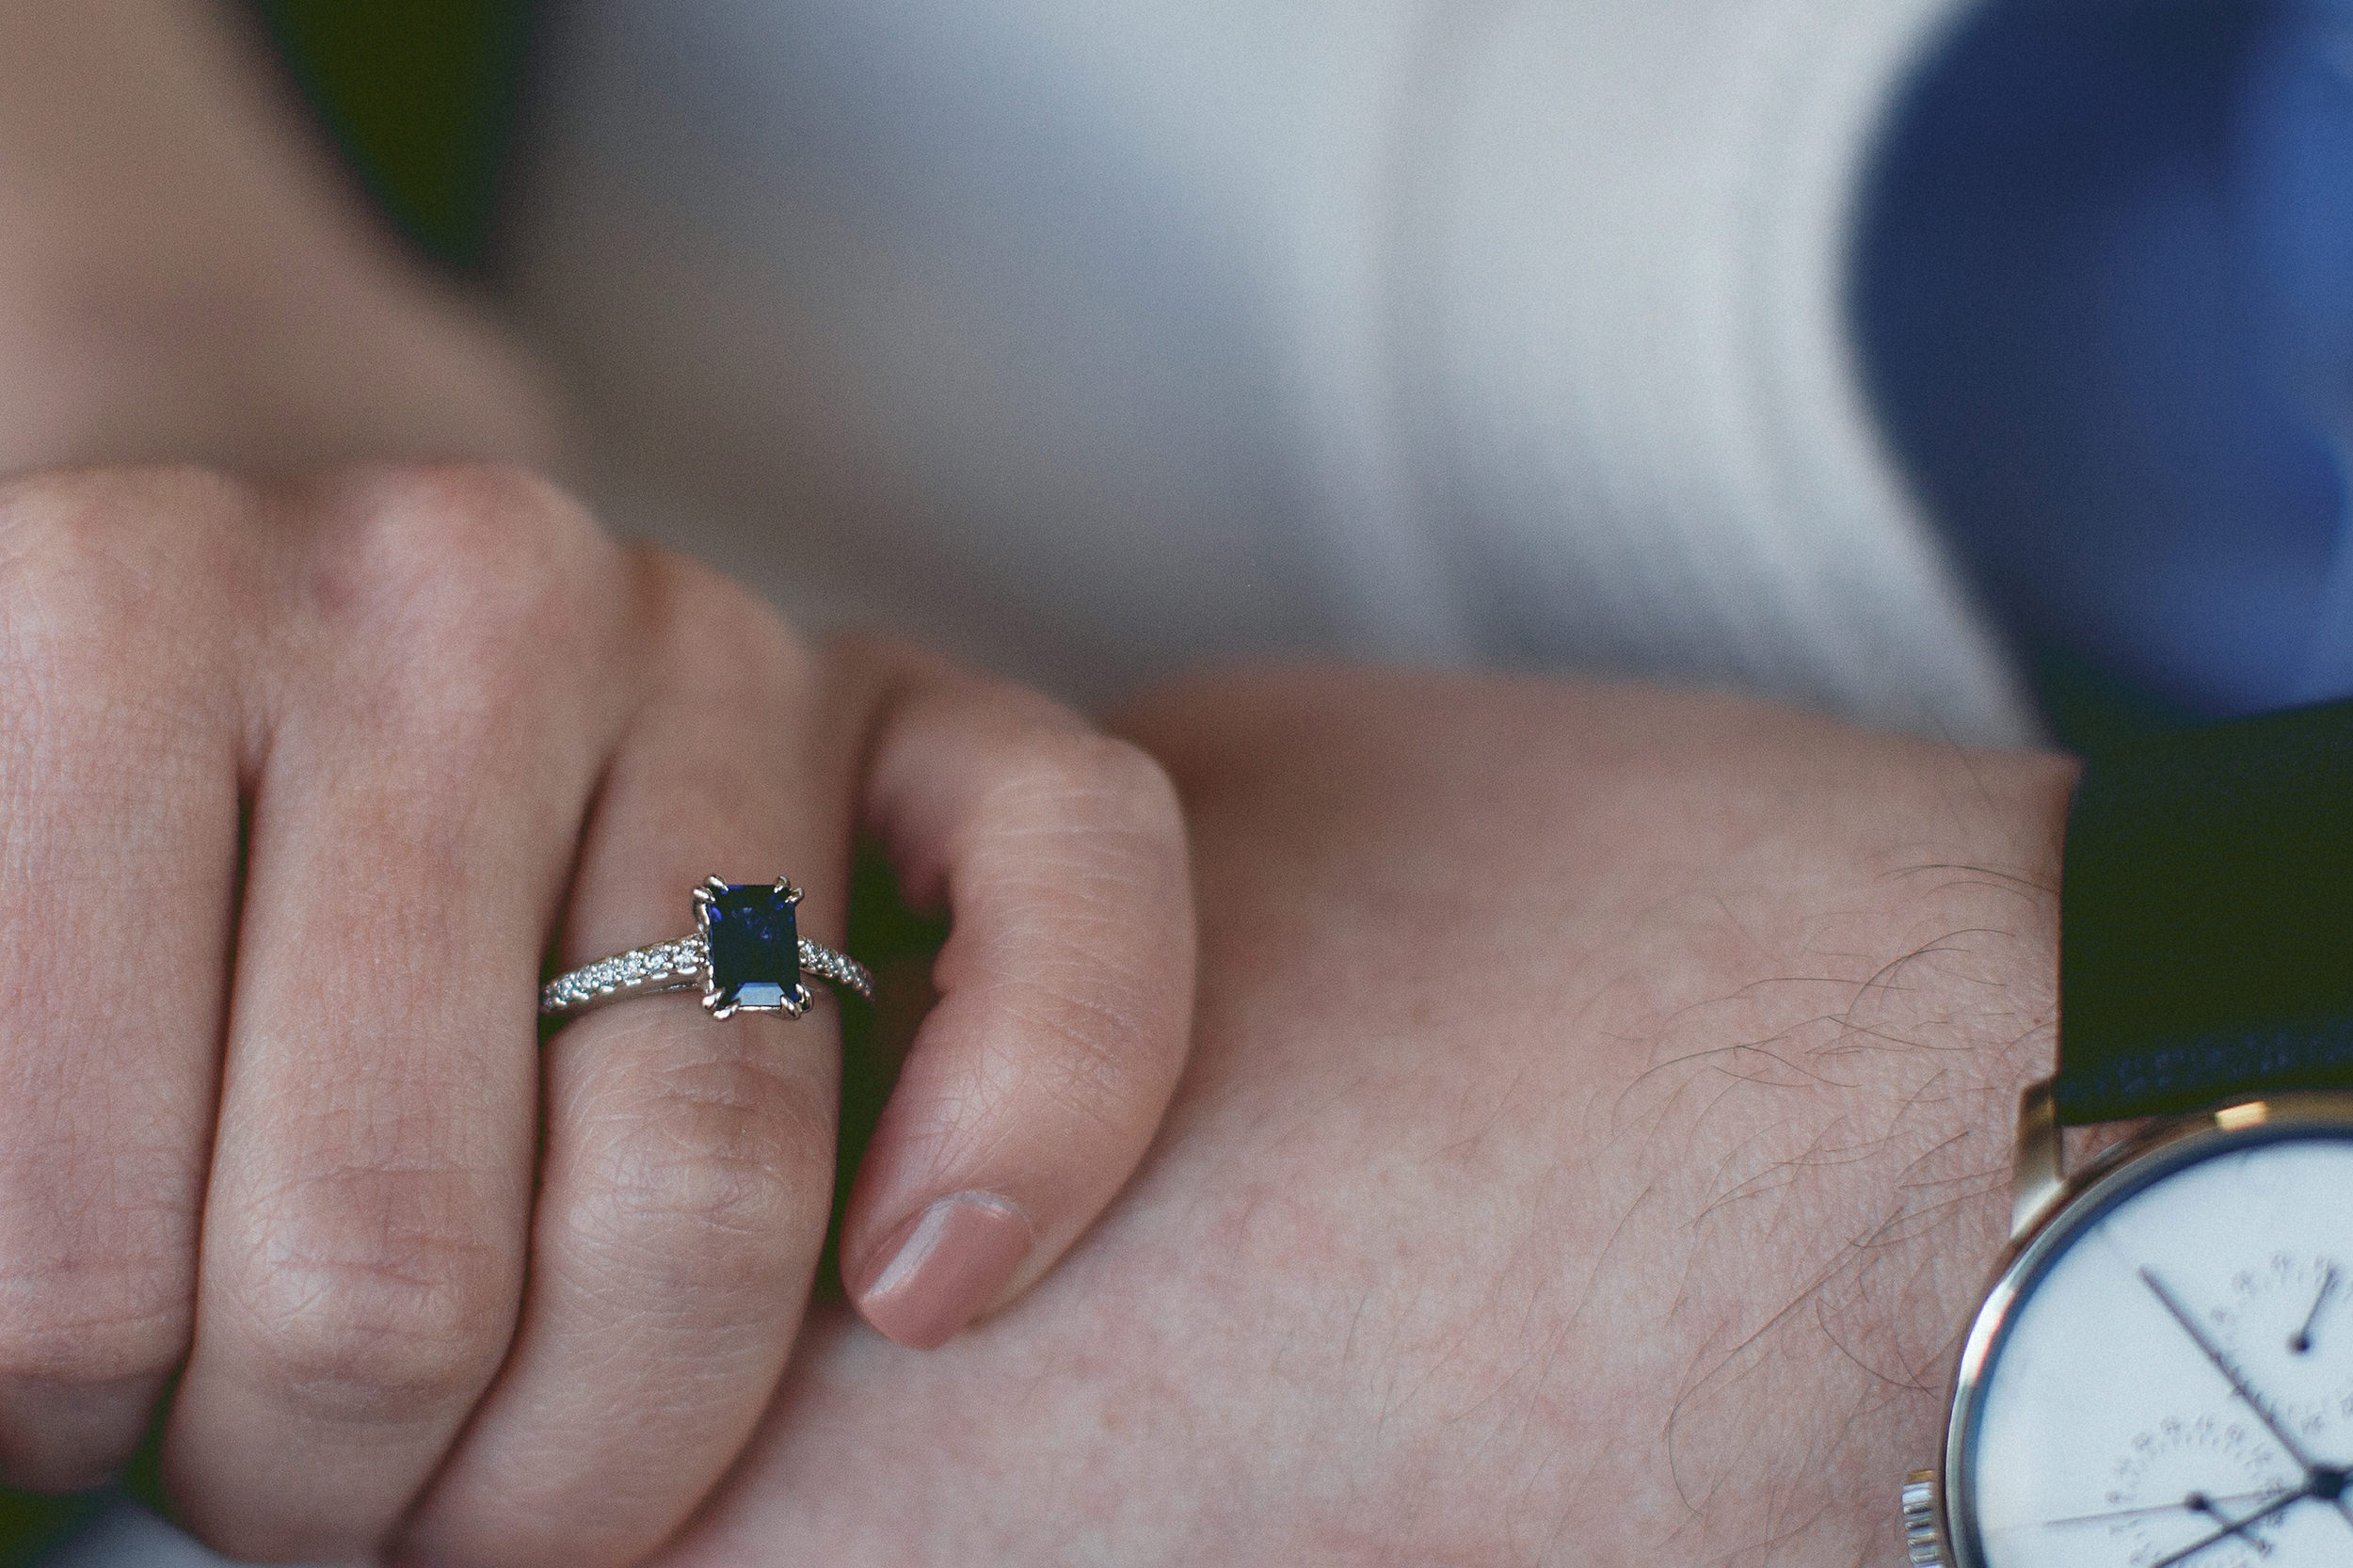 close up of the engagement ring